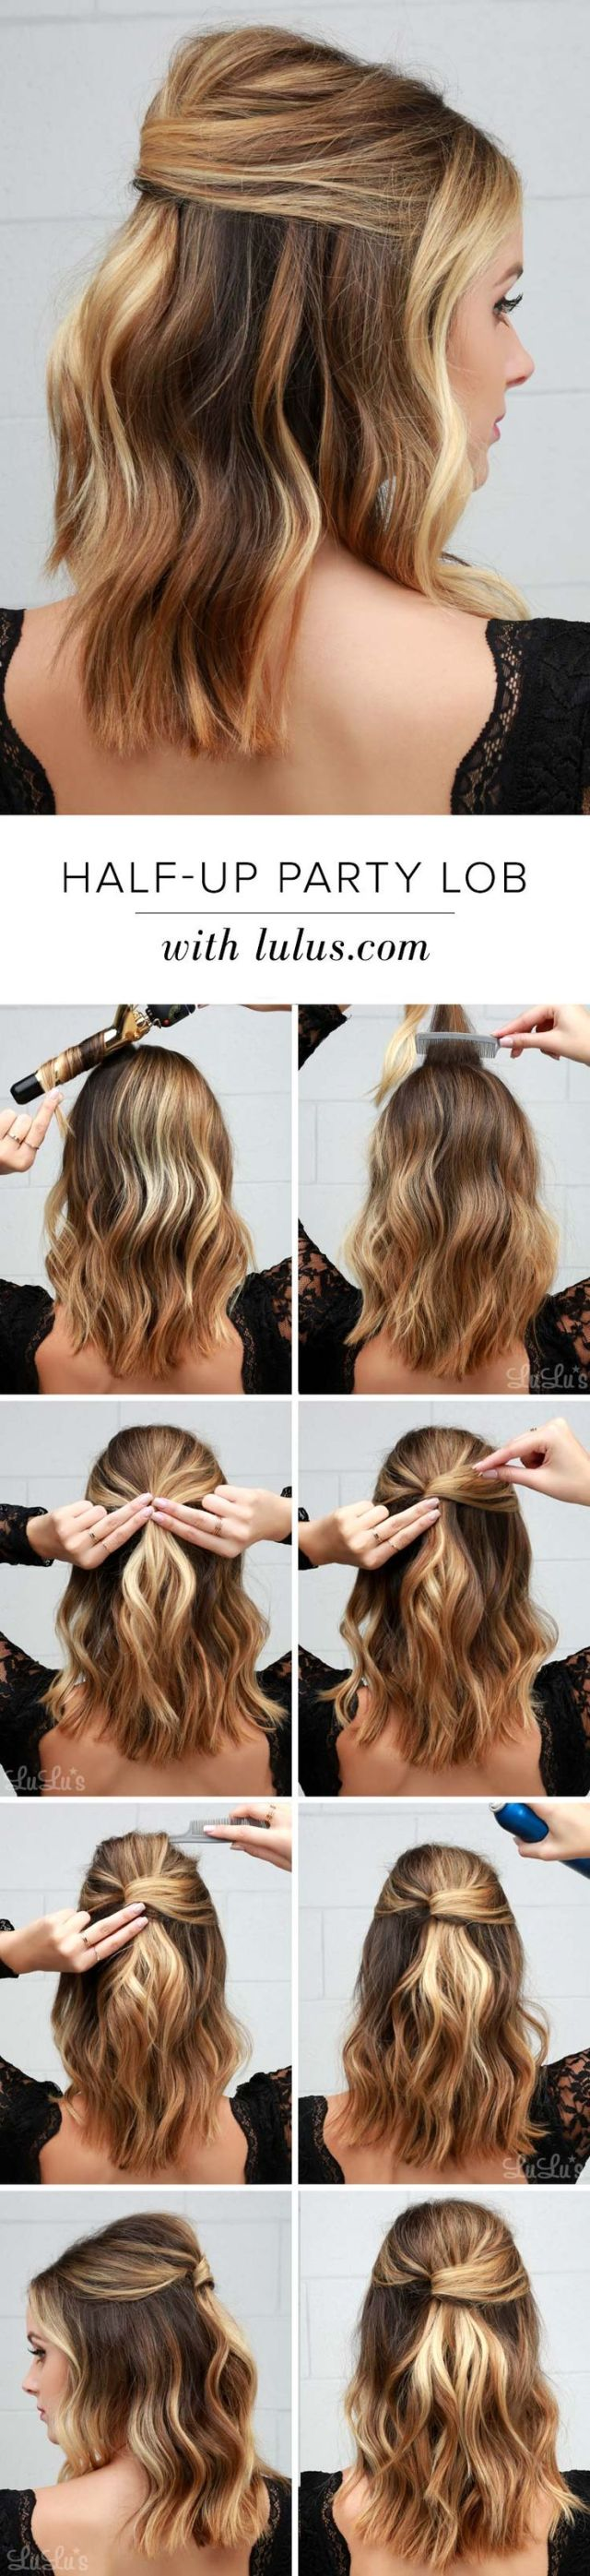 17 best images about hair & make up & nails on pinterest